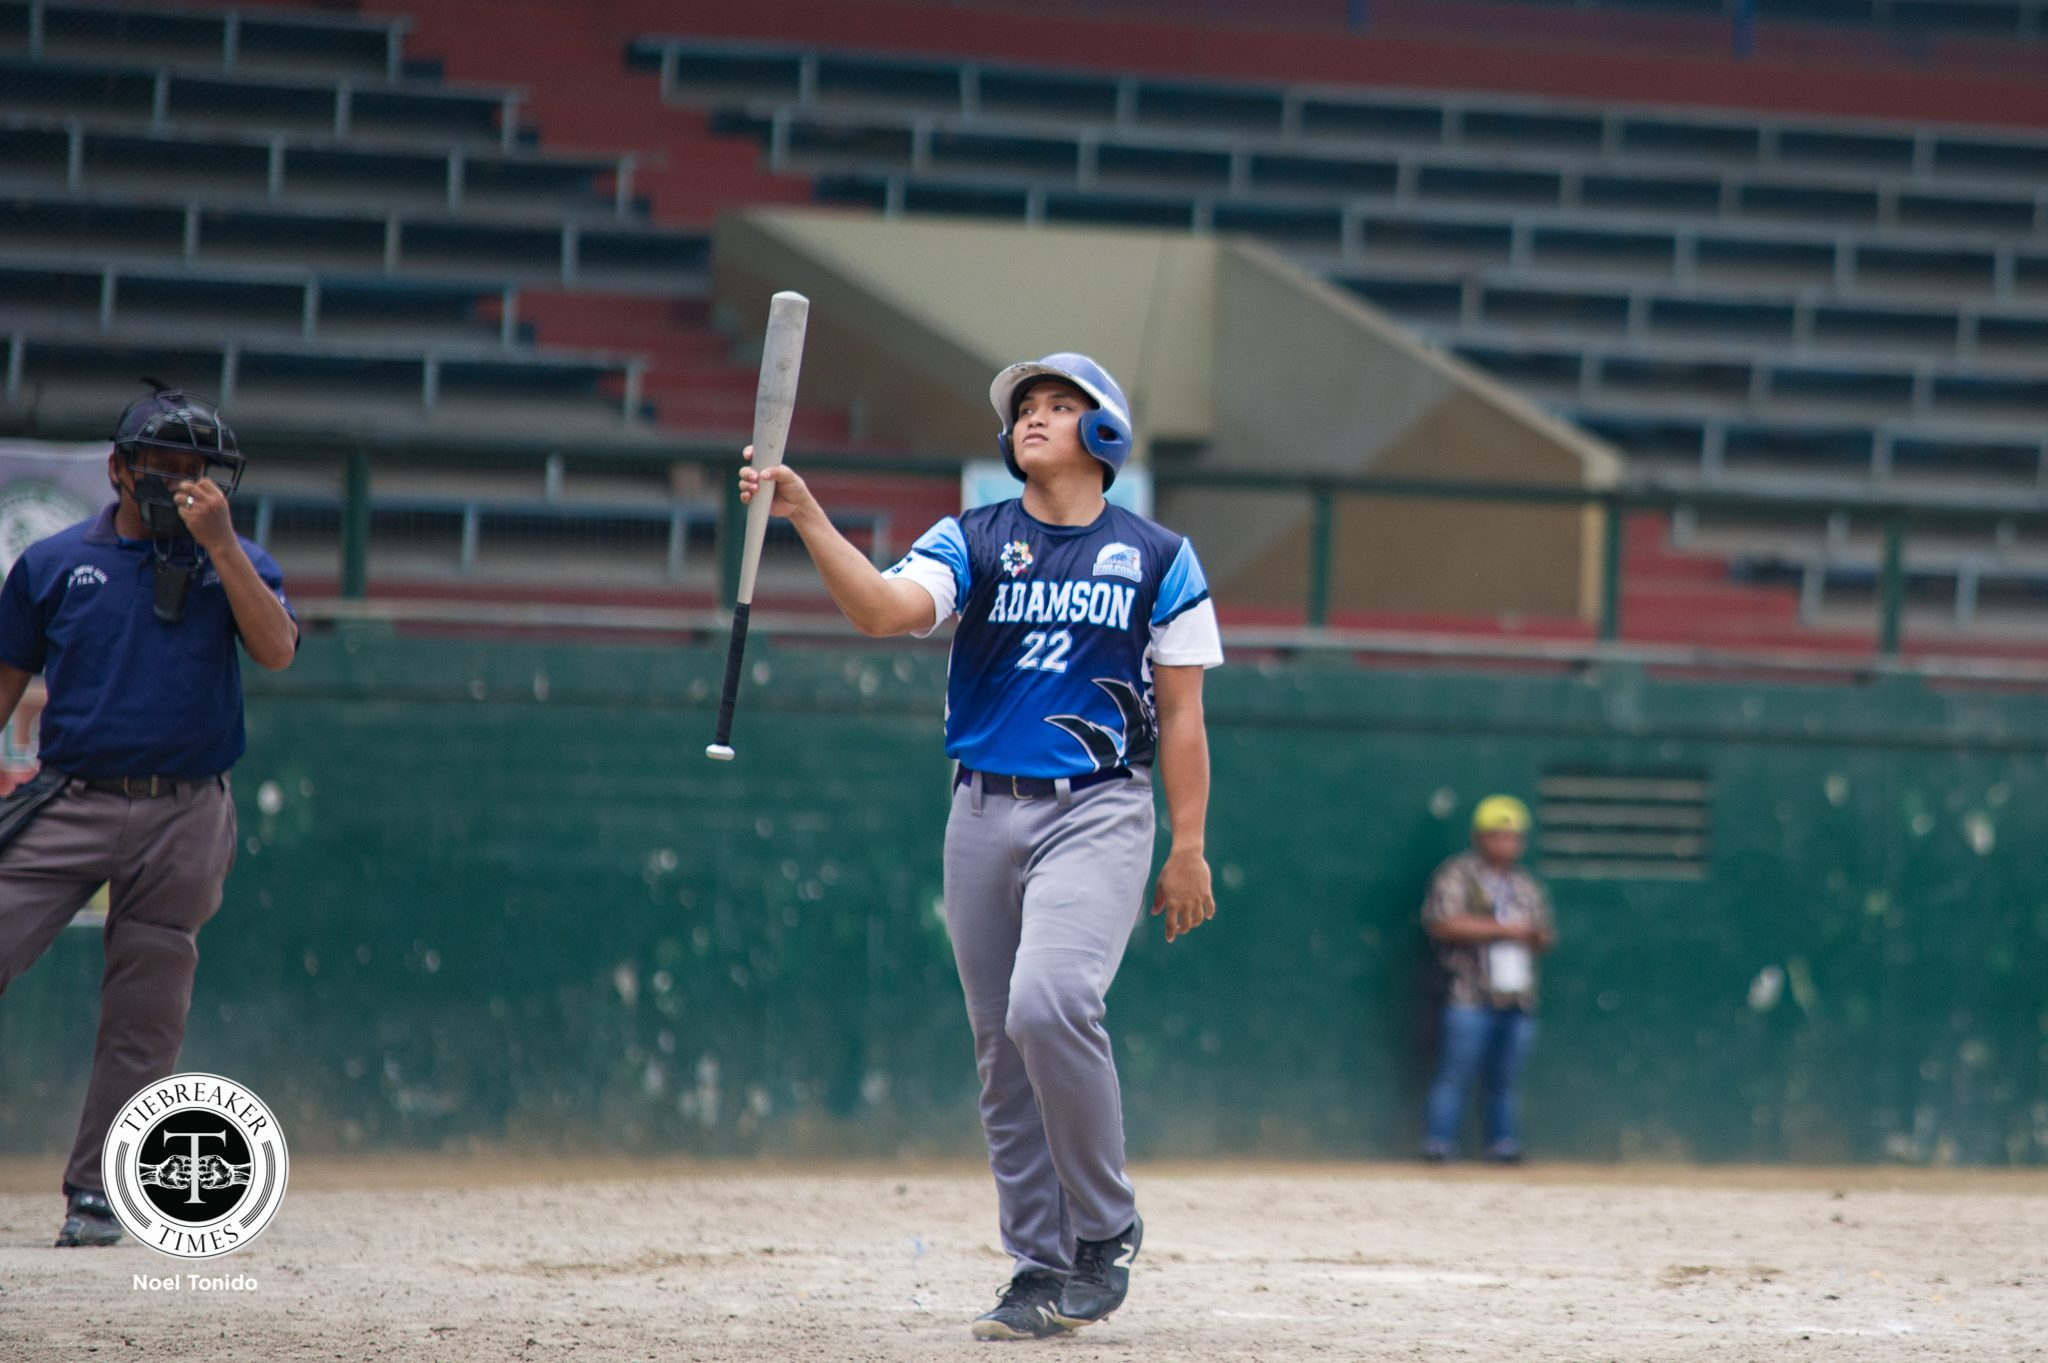 Tiebreaker Times Erwin Bosito sparks early surge against UST as Adamson stays alive in Finals race AdU Baseball News UAAP UST  Vince Terible UST Golden Sox UAAP SEASON 81 Baseball UAAP Season 81 Orlando Binarao Mark Geronilla Lexter Carandang John Lipalam Jeffrey Santiago Erwin Bosito Adamson Baseball